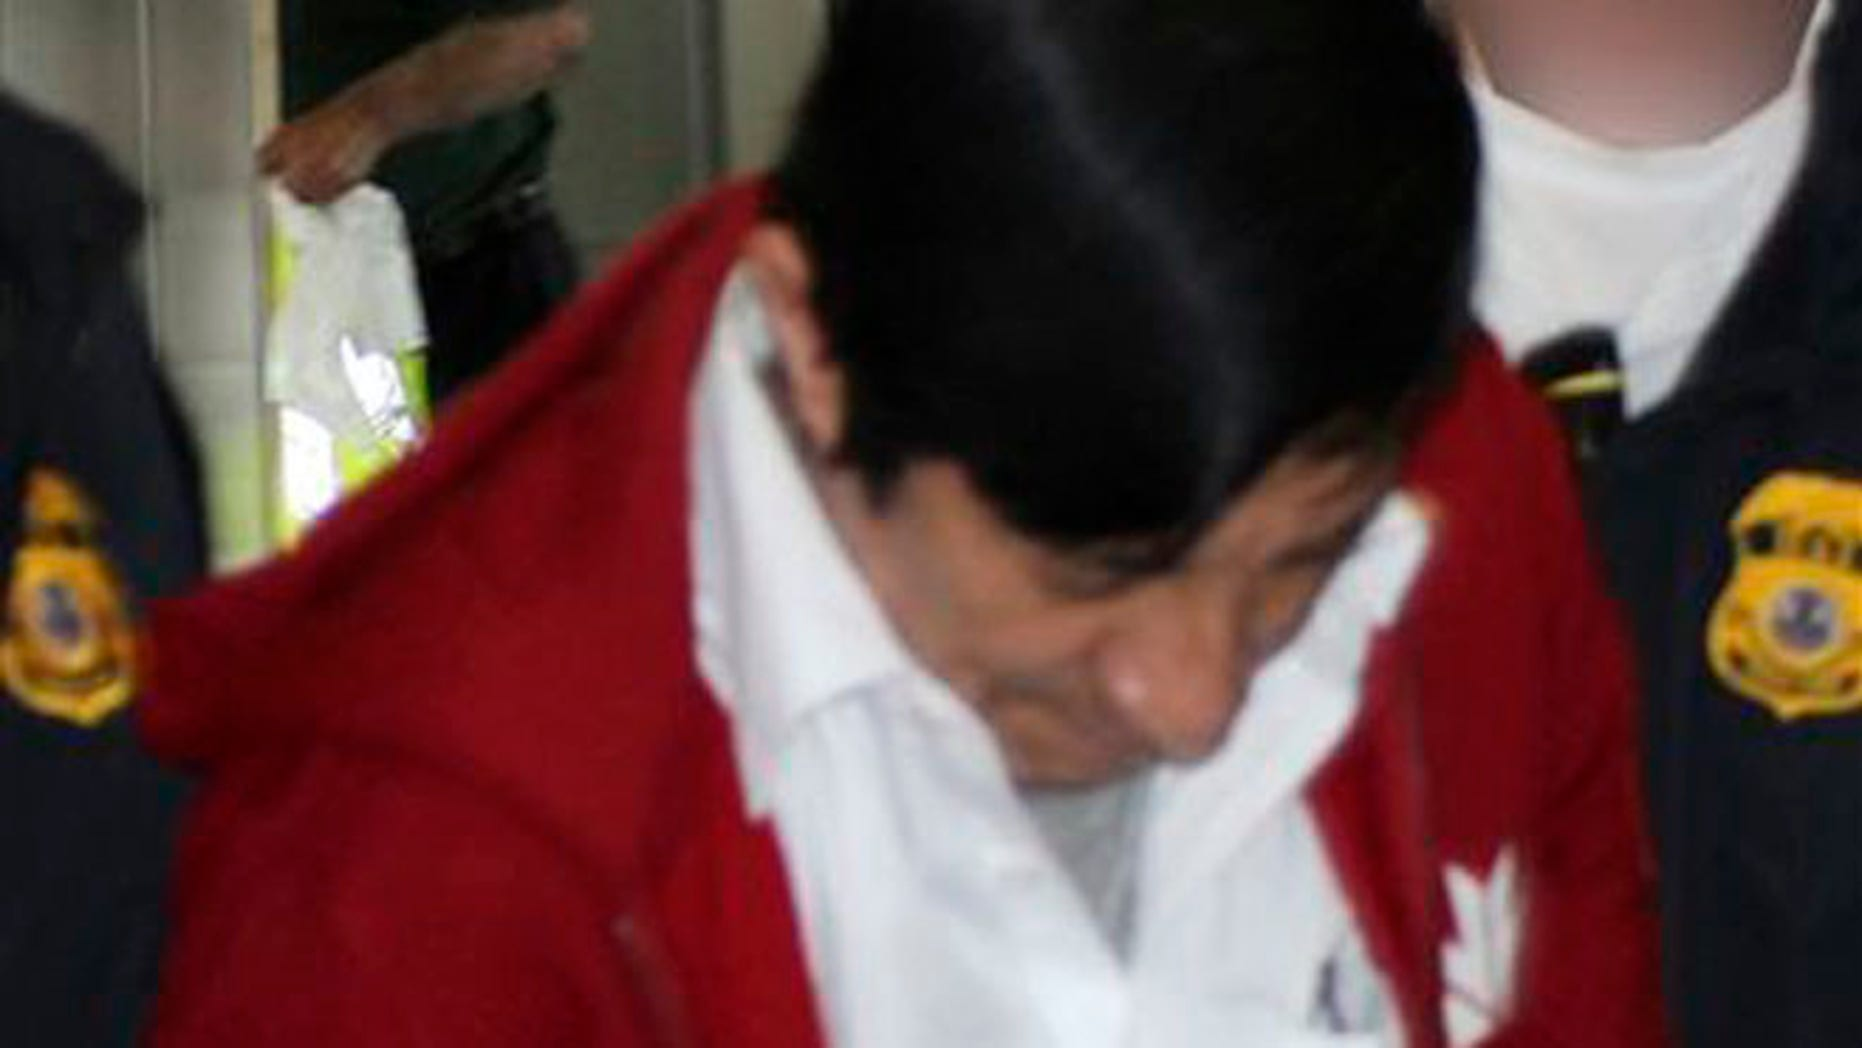 Jorge Sosa, a former Guatemalan soldier, as he is extradited to the U.S. from Canada on Sept. 21, 2012.